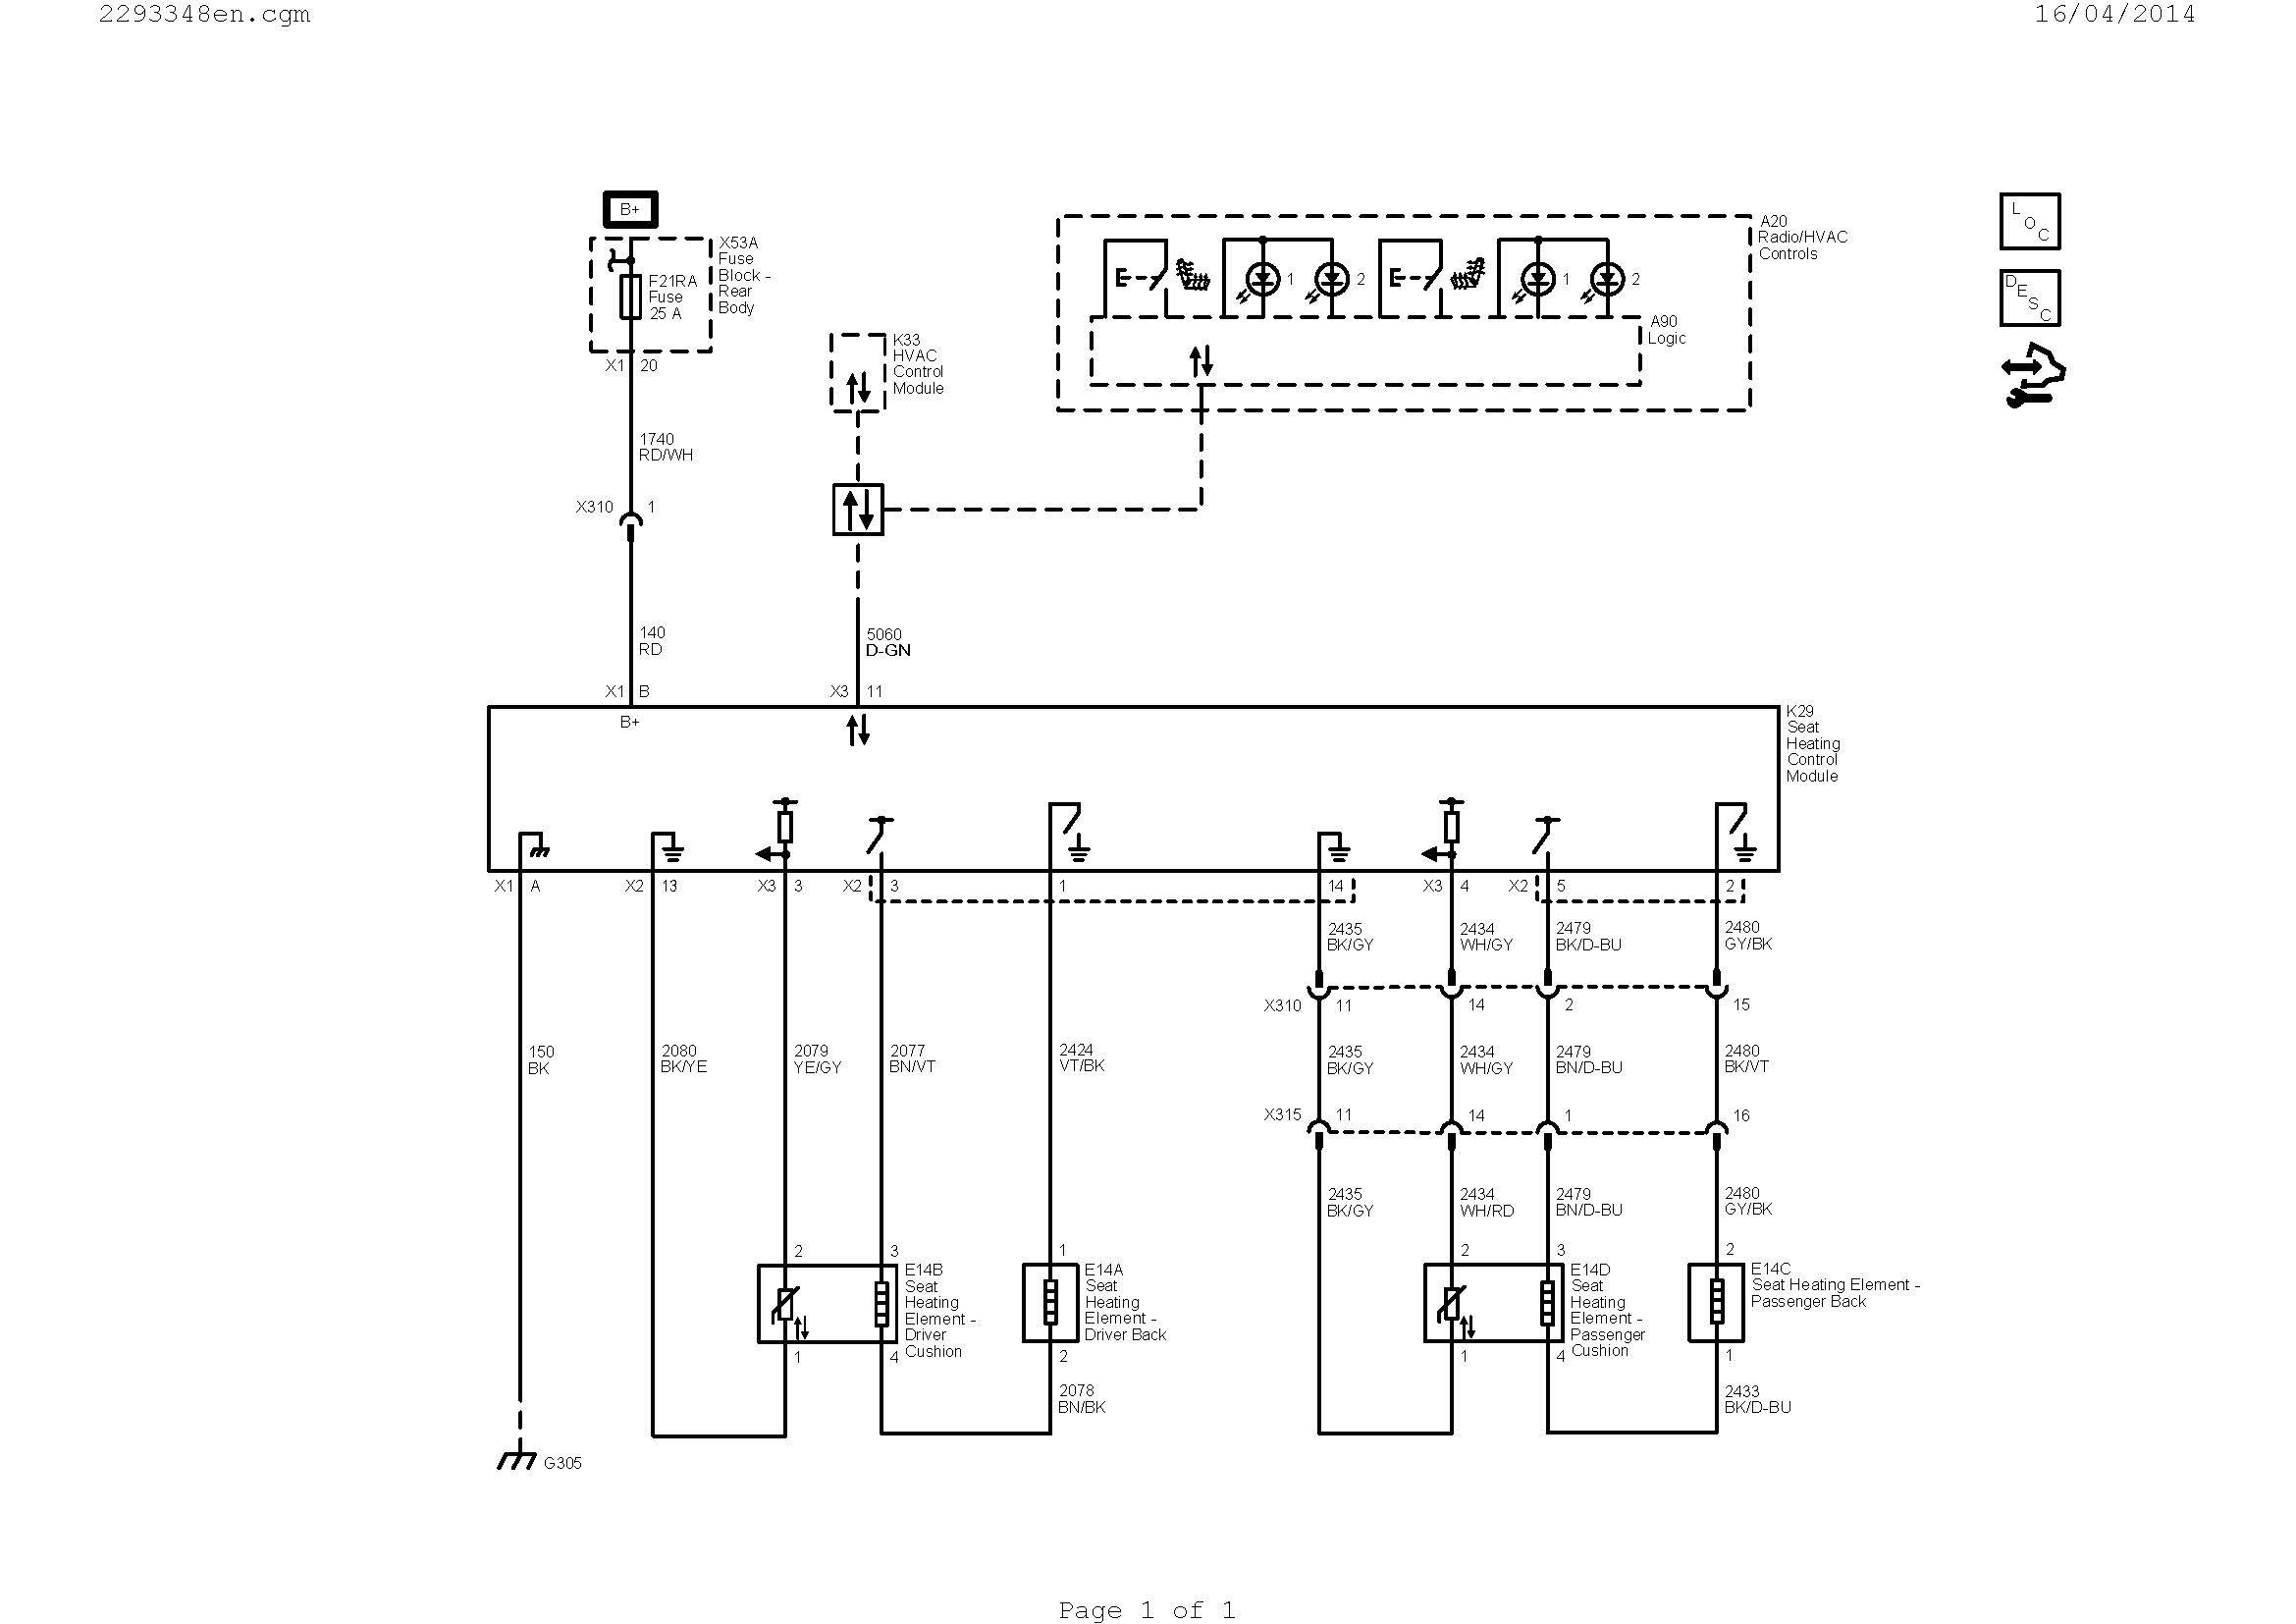 lennox 51m33 wiring diagram Collection-Lennox Wiring Diagram Collection 9-m